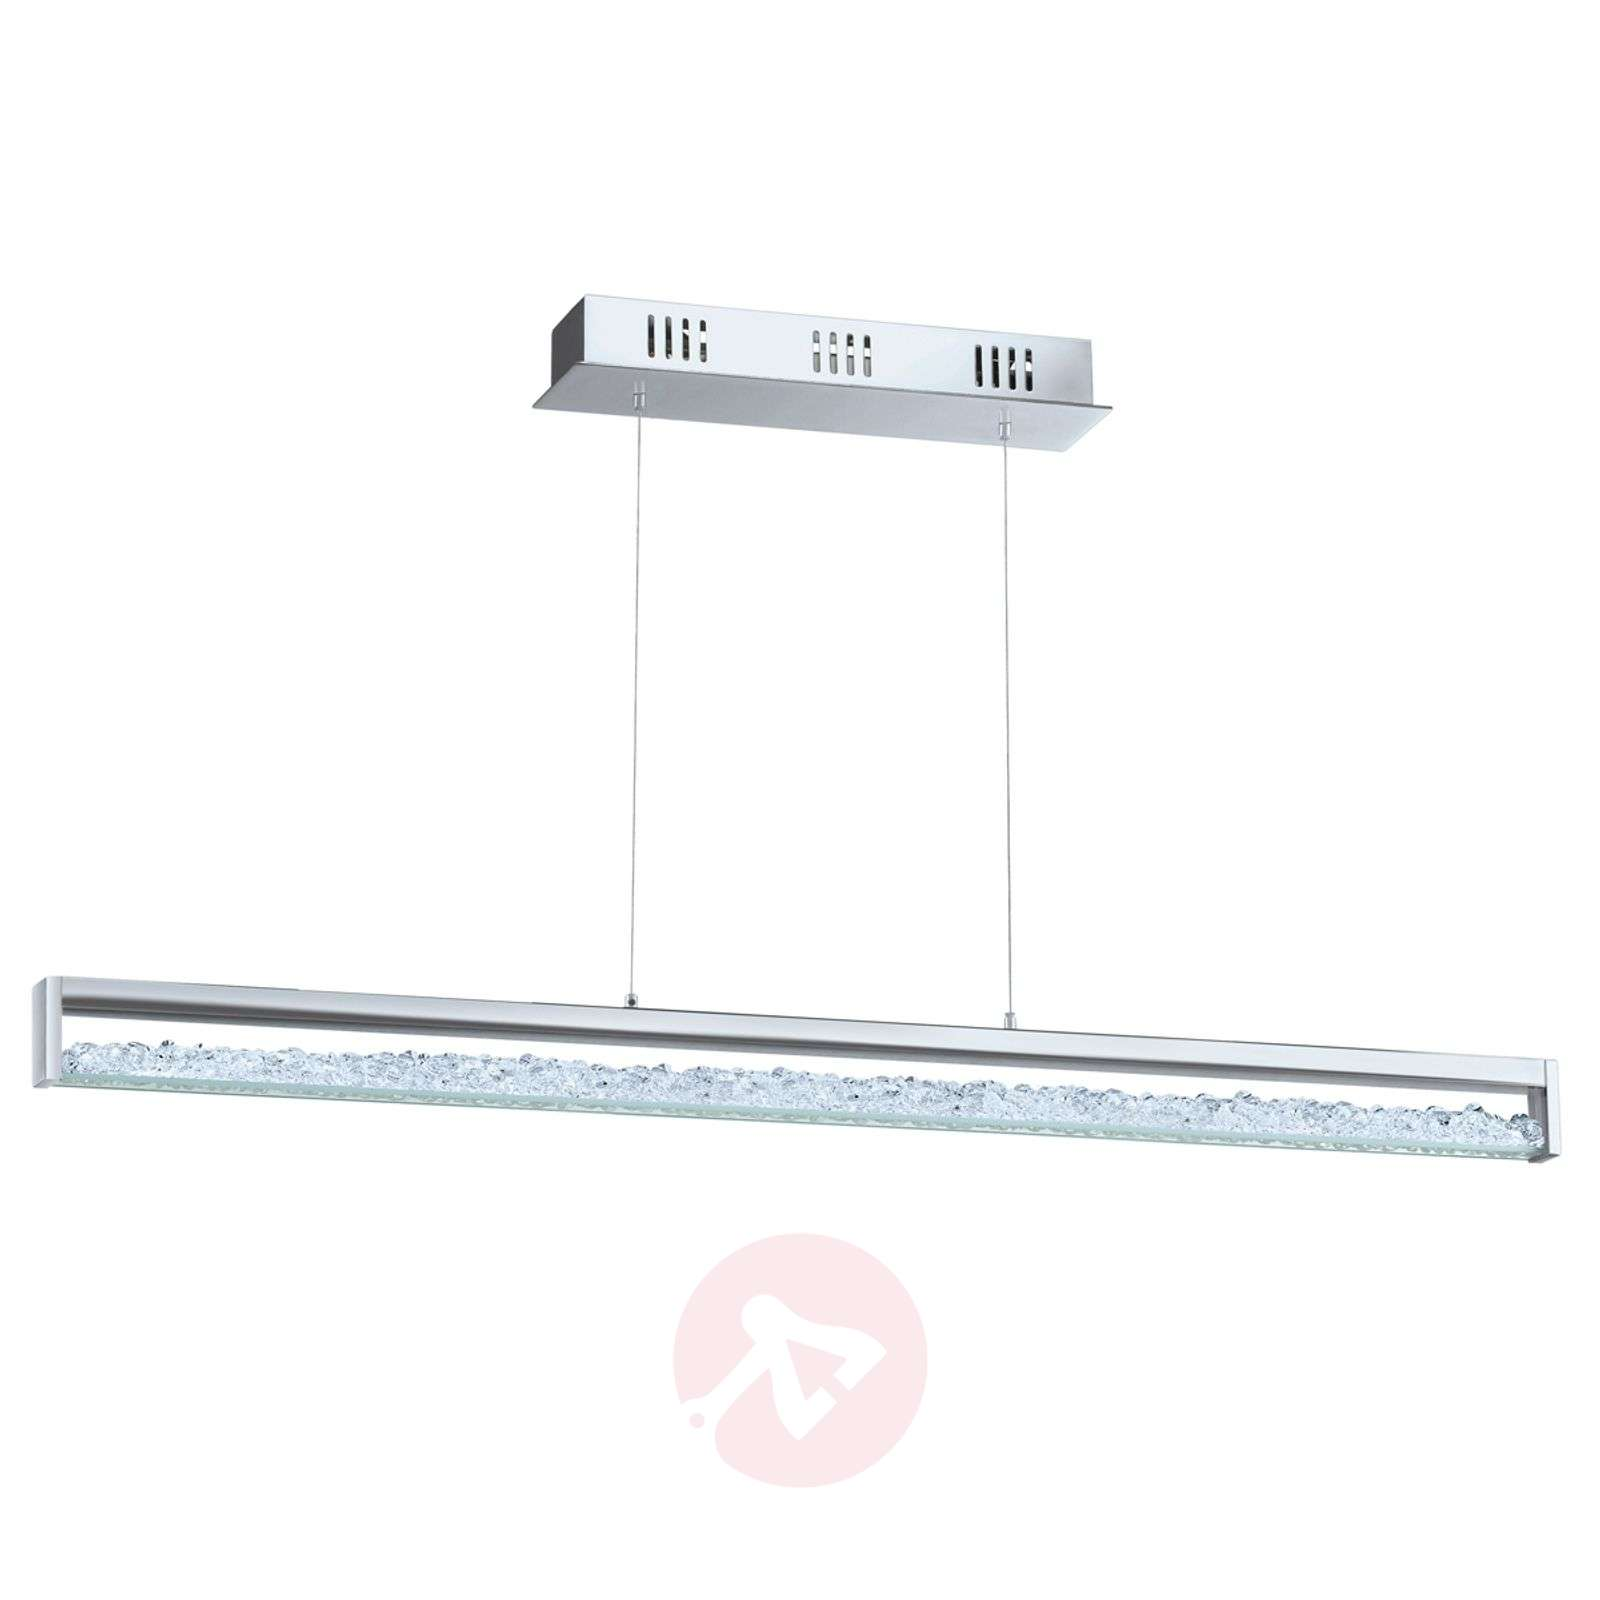 Suspension LED Cardito avec cristal Asfour longueu-3001602-01